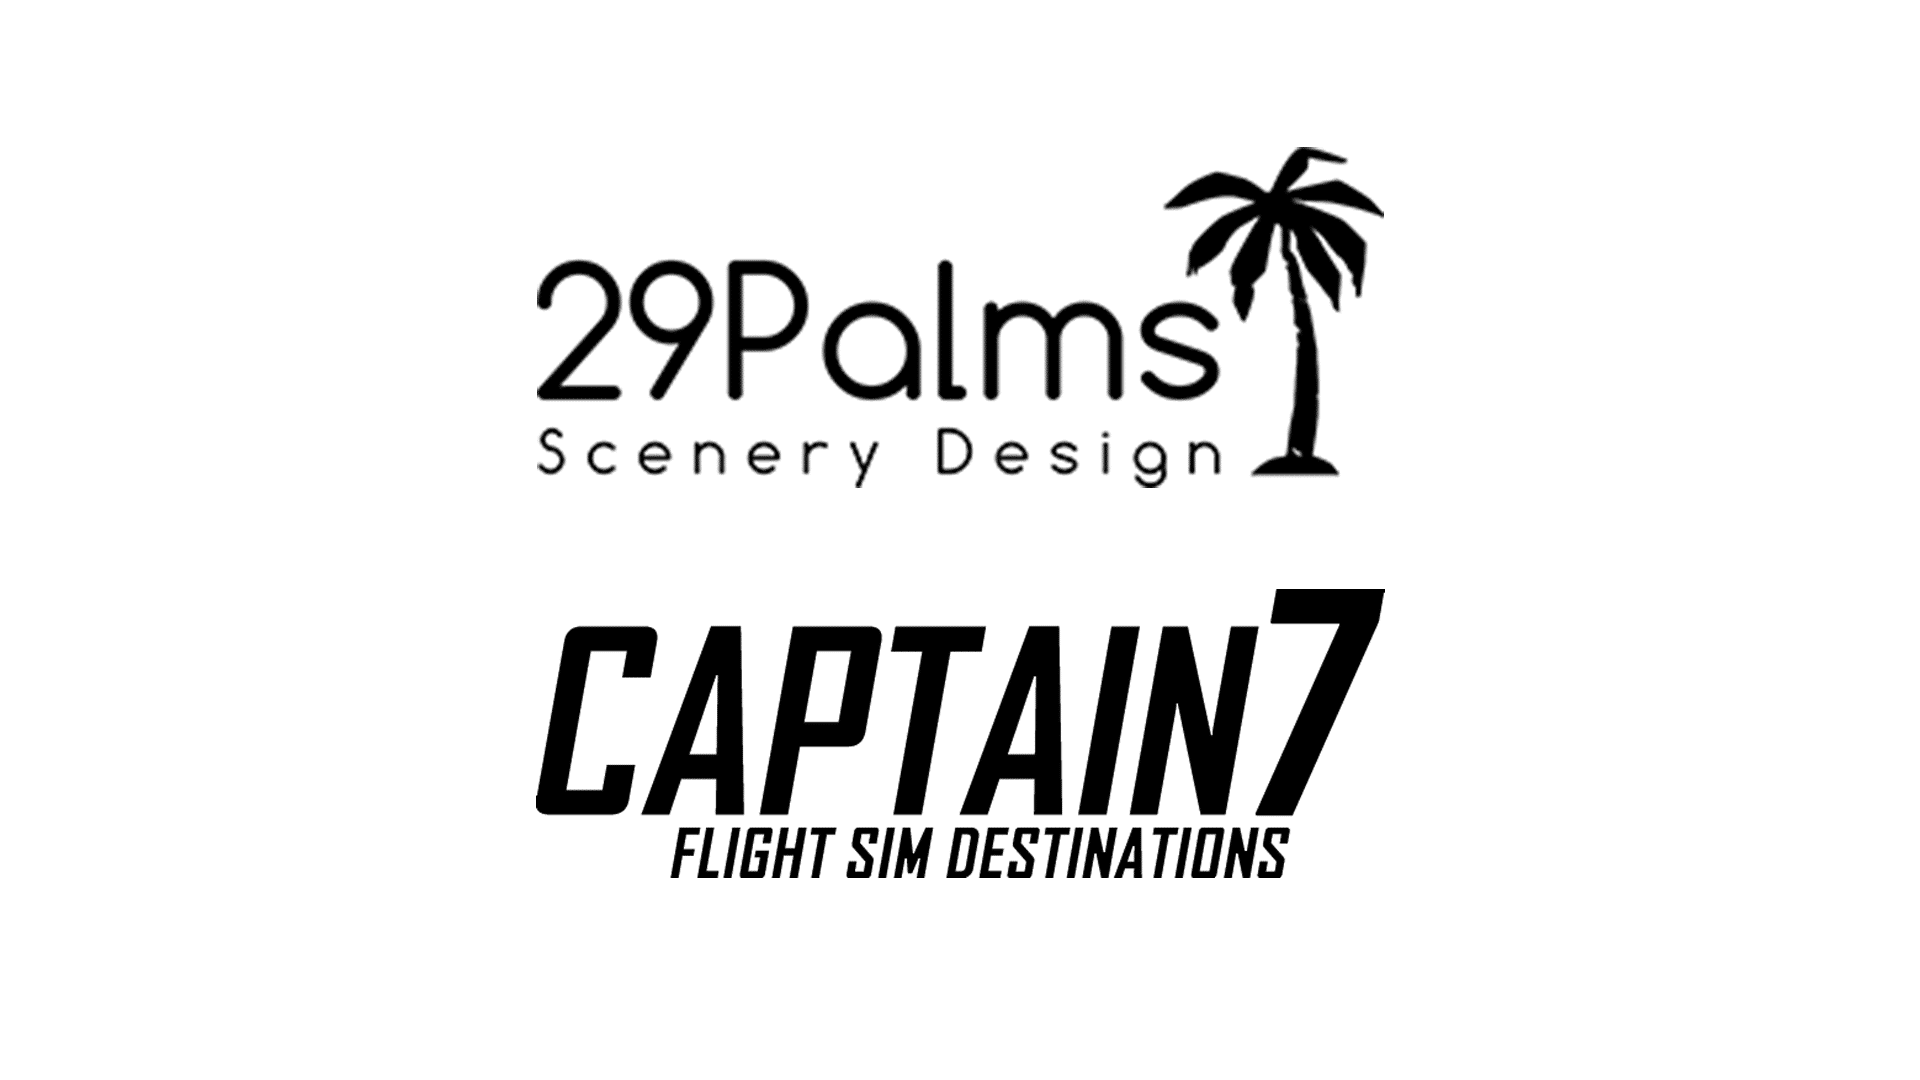 [Partner] 29Palms + Captain7